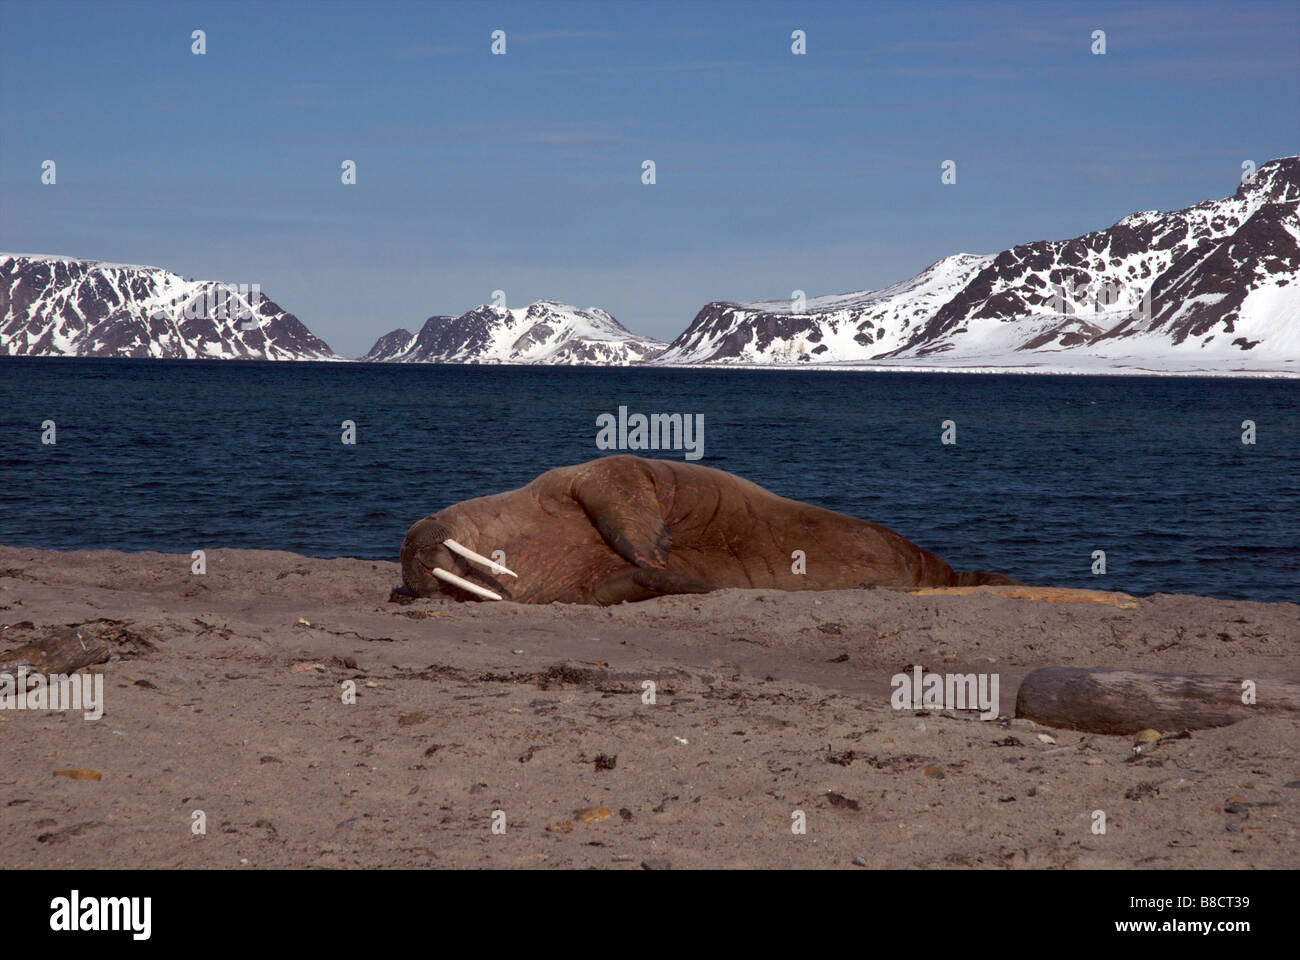 Life's a beach for this Walrus in Spitsbergen - Stock Image